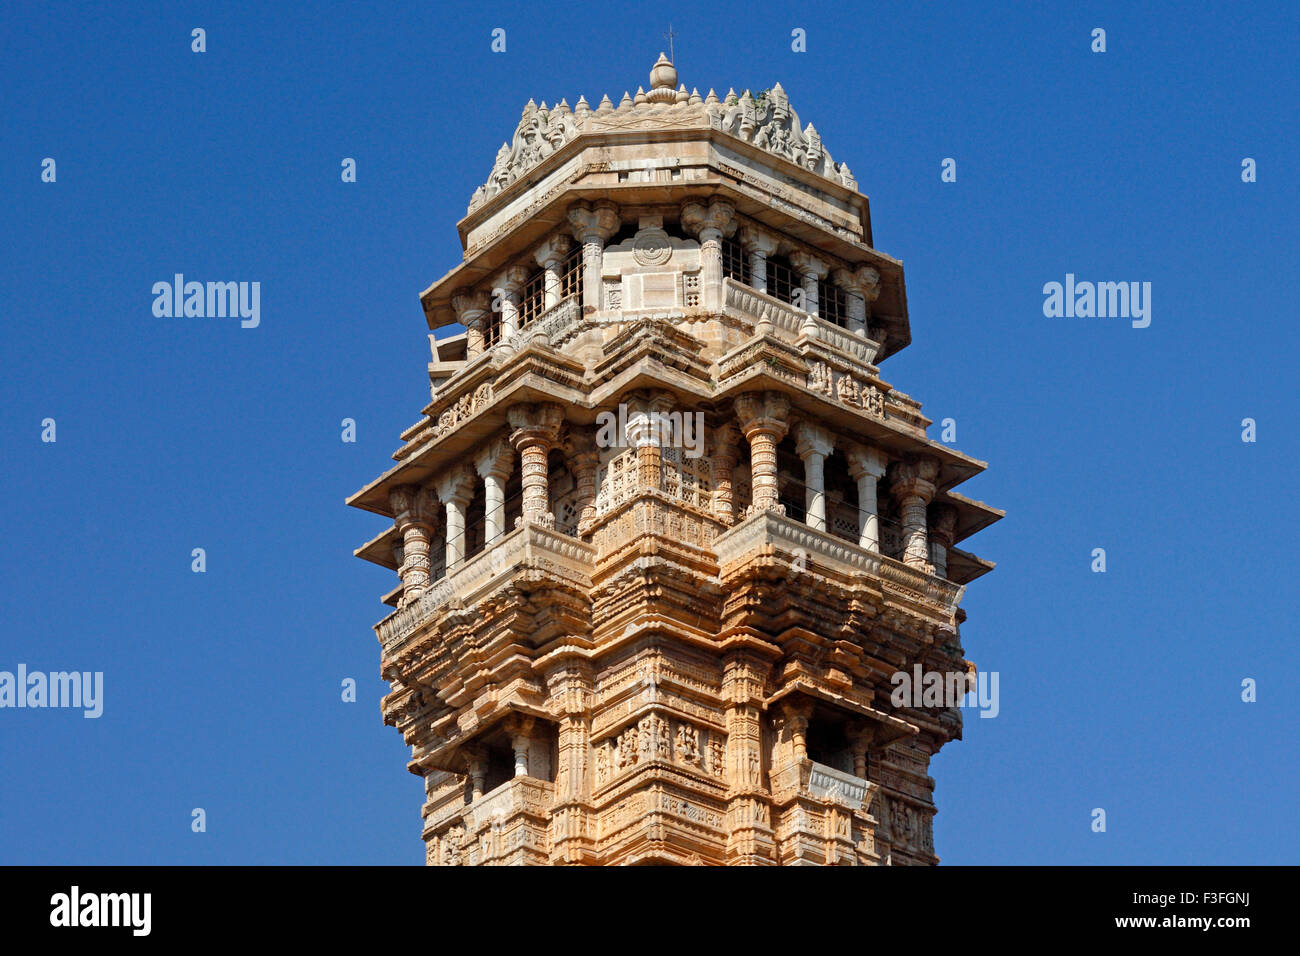 Heritage 37 meter high Vijay Stambh (victory tower) built in 1440 AD ; Chittorgarh ; Rajasthan ; India - Stock Image